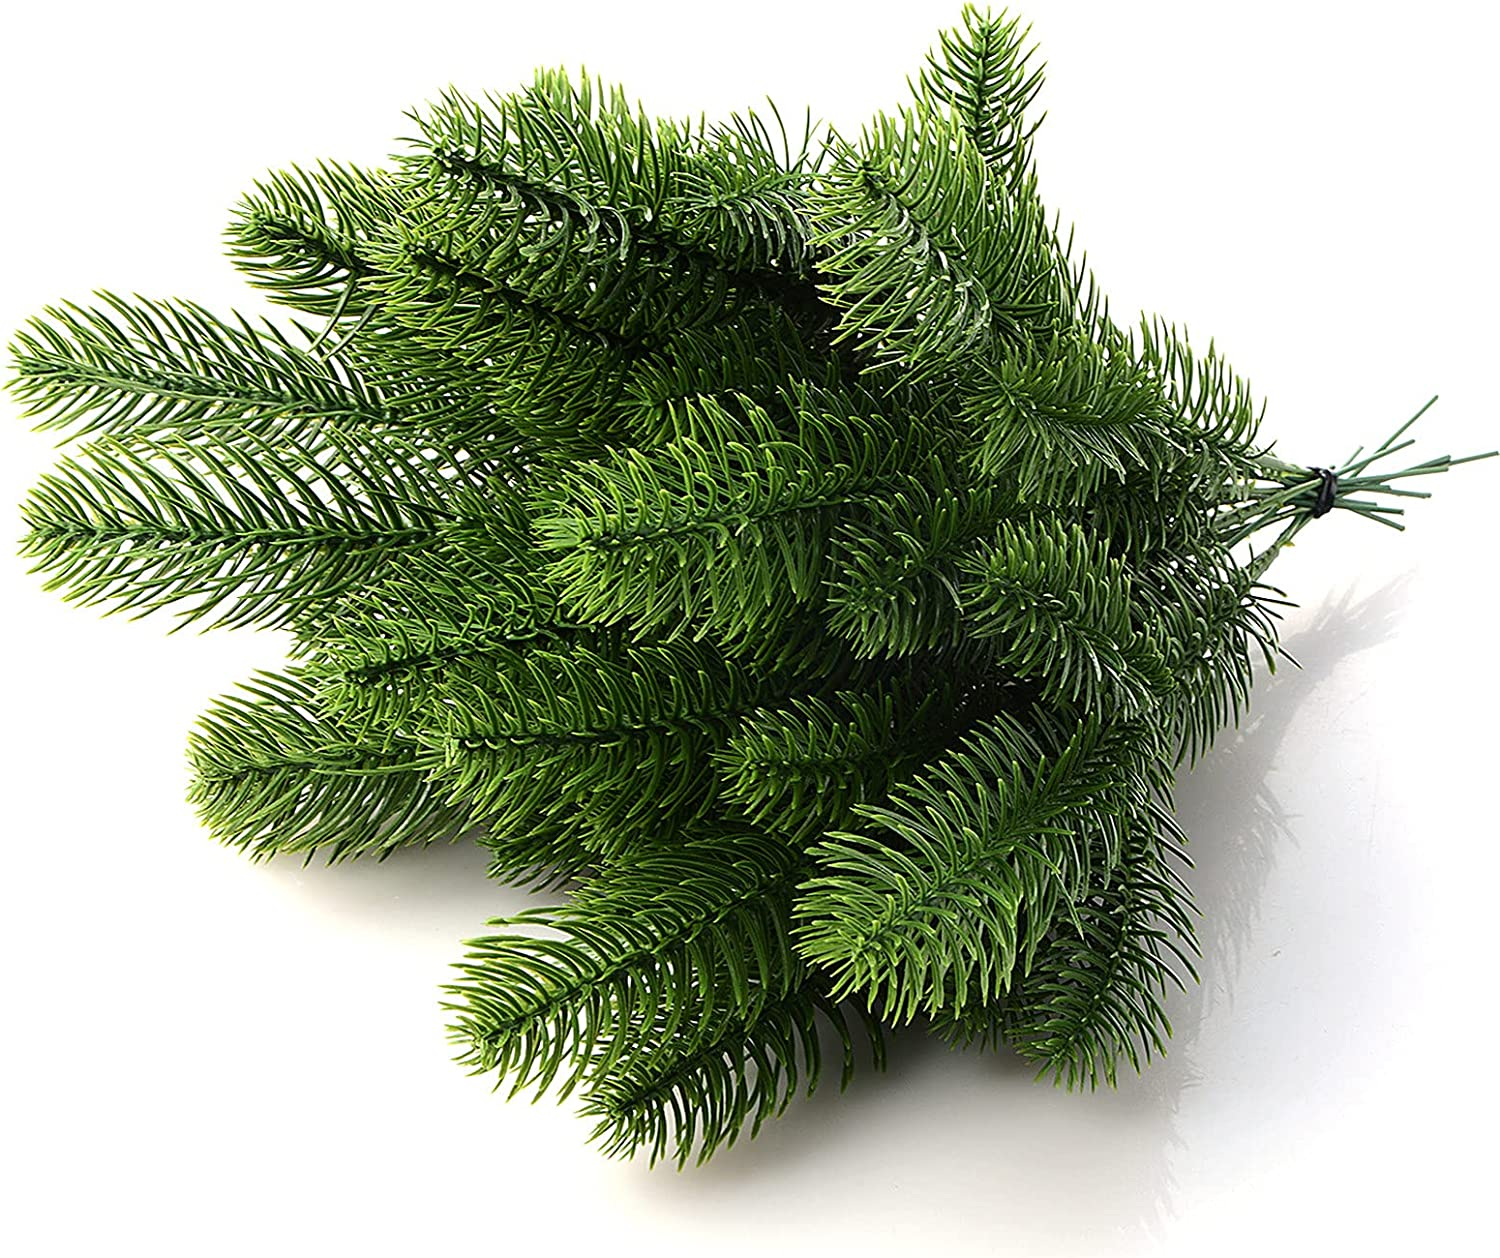 Max 42% OFF BELUAPI 50Pcs High quality new Artificial Pine Needles Christmas Green Branches